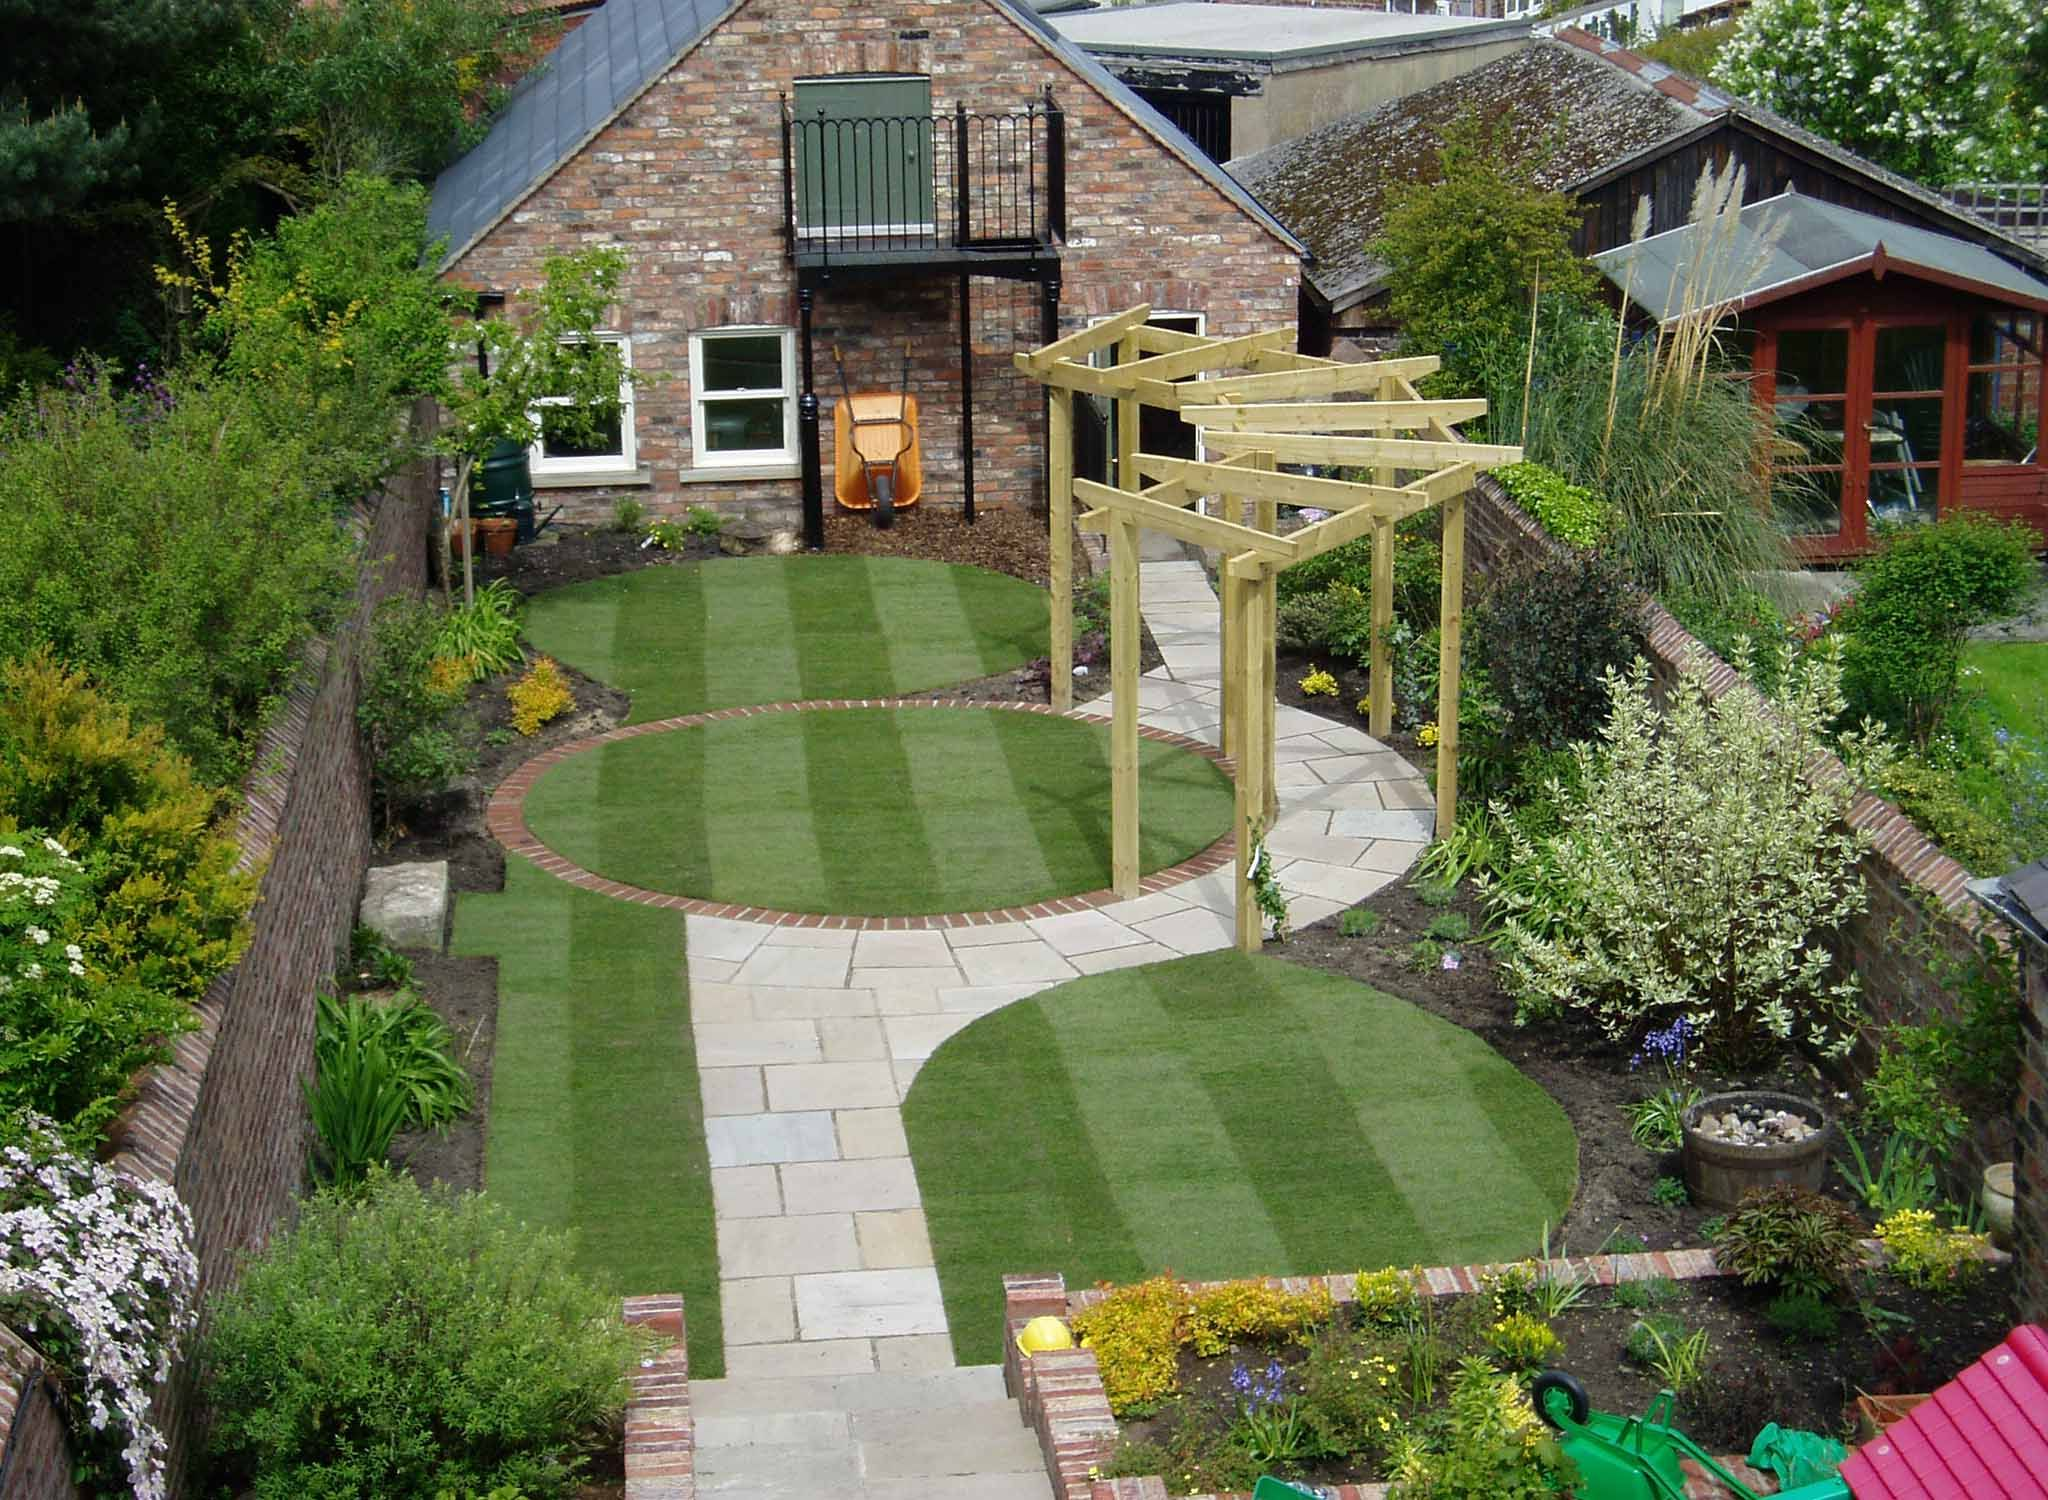 Stunning Garden Design House With A Beautiful Garden Decor And Cool Green Grass Round Resembles Carpet Dizajn Ozelenenie Dizajn Sada Kamnej Dizajn Sada